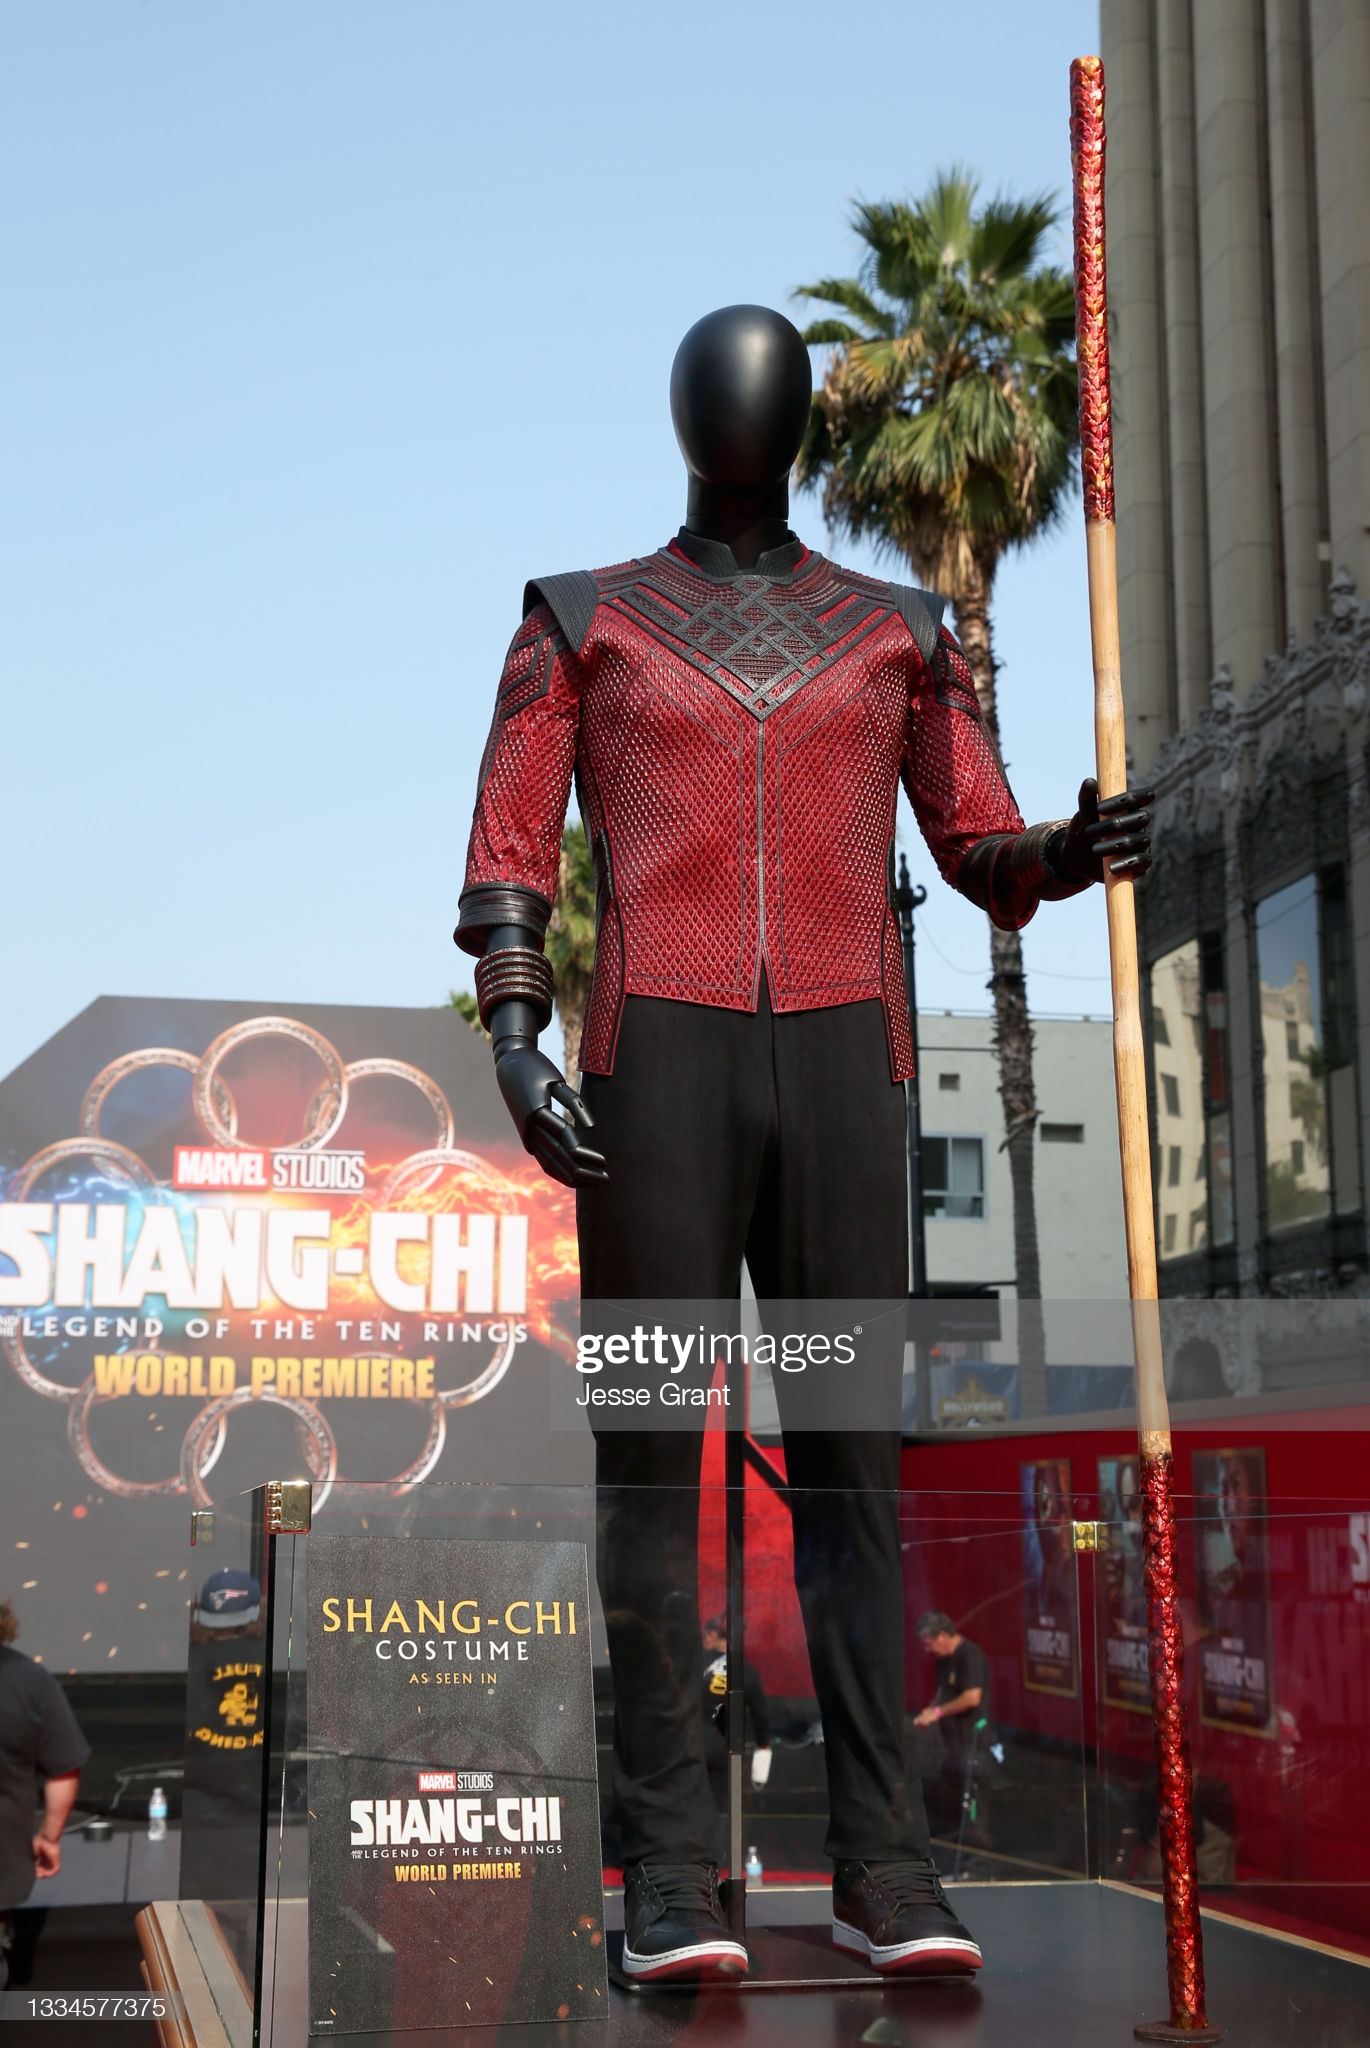 Shang-Chi costume at premiere